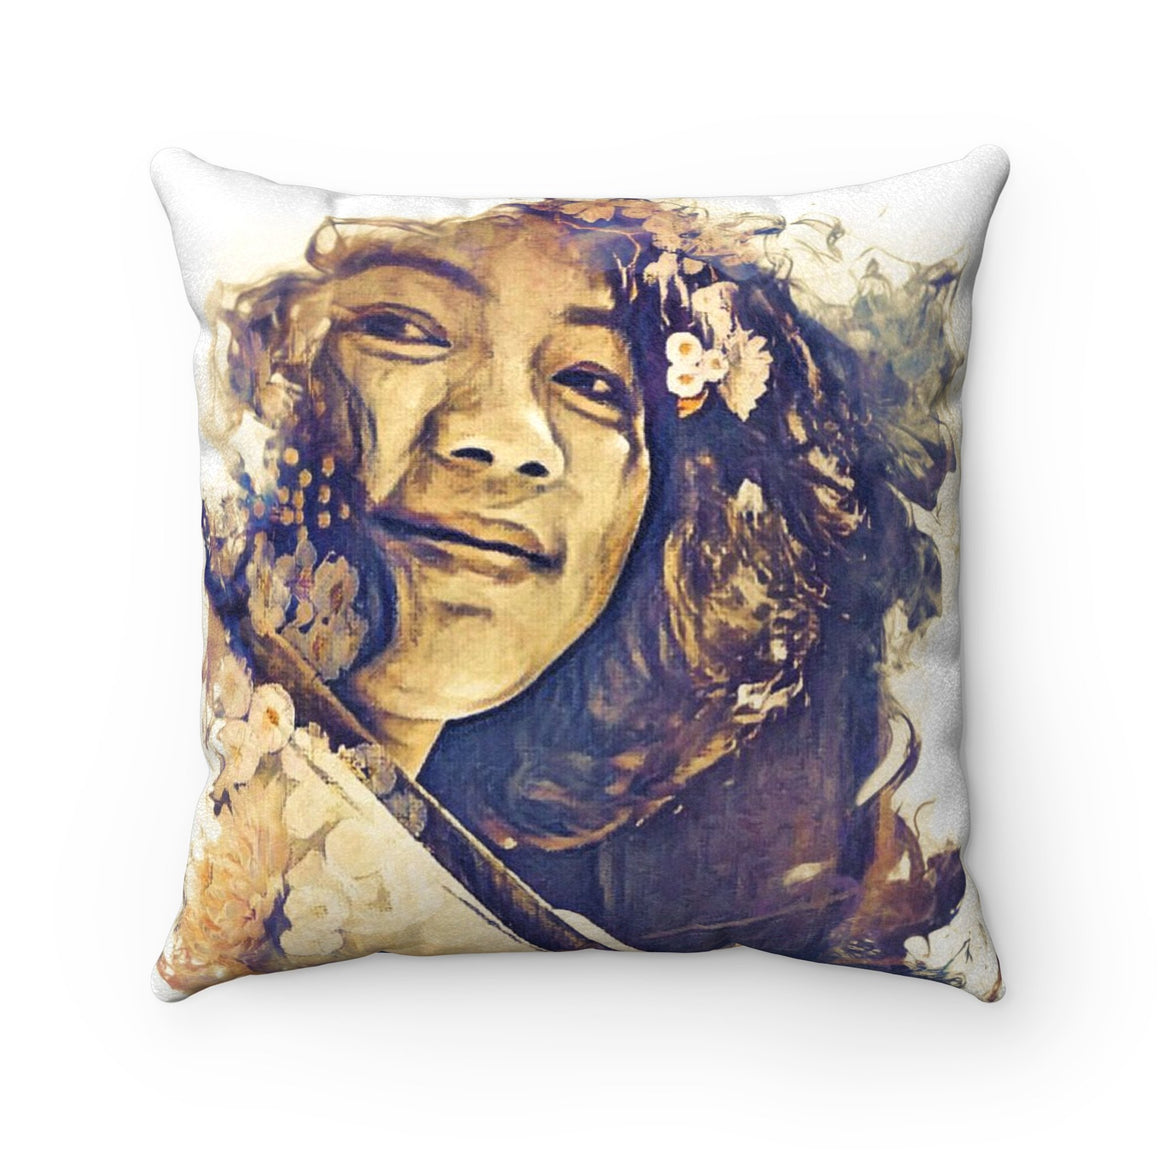 Levi Thang Vintage Face Design U Faux Suede Square Pillow Case